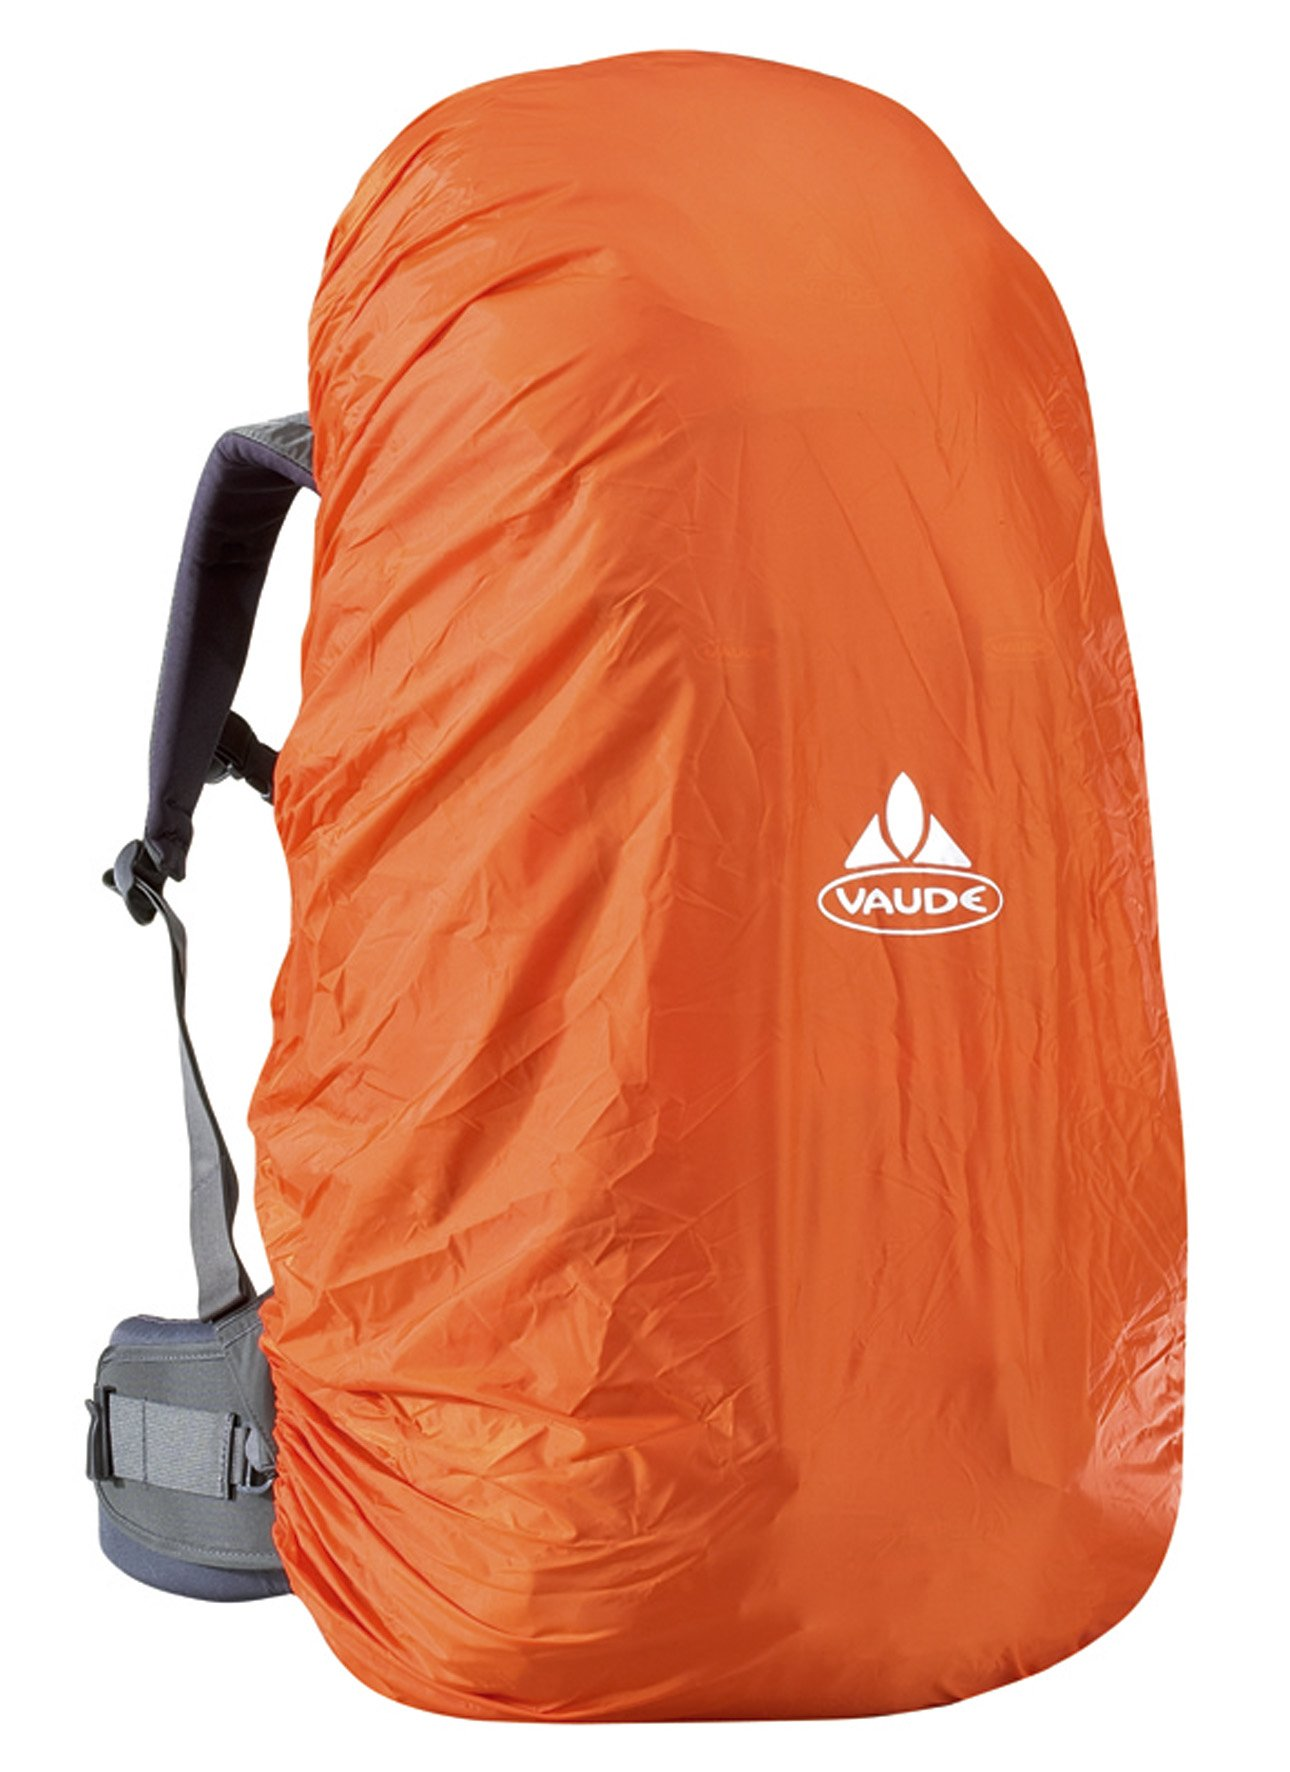 71N3r0tfcOL - VAUDE Raincover for Backpacks 6-15 l orange backpack accessories